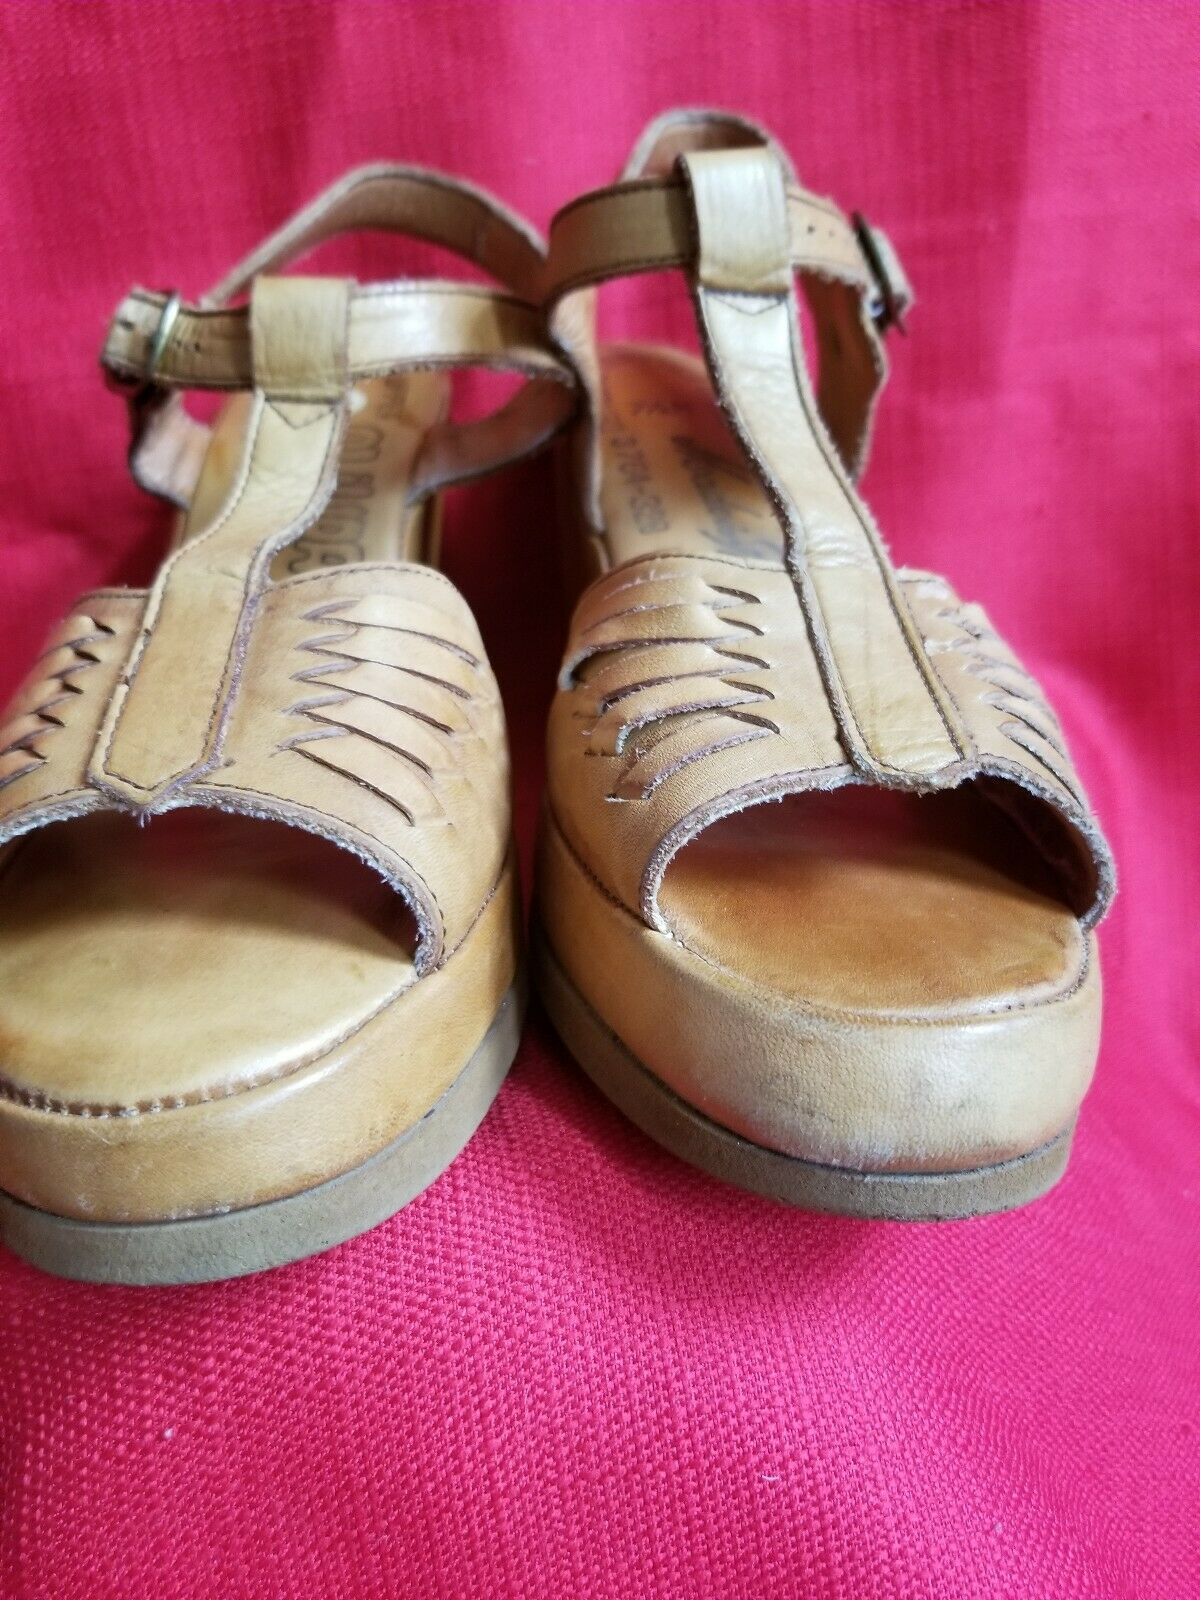 Vtg 1970s does 40s Leather Wedge Sandals Size 7.5… - image 5